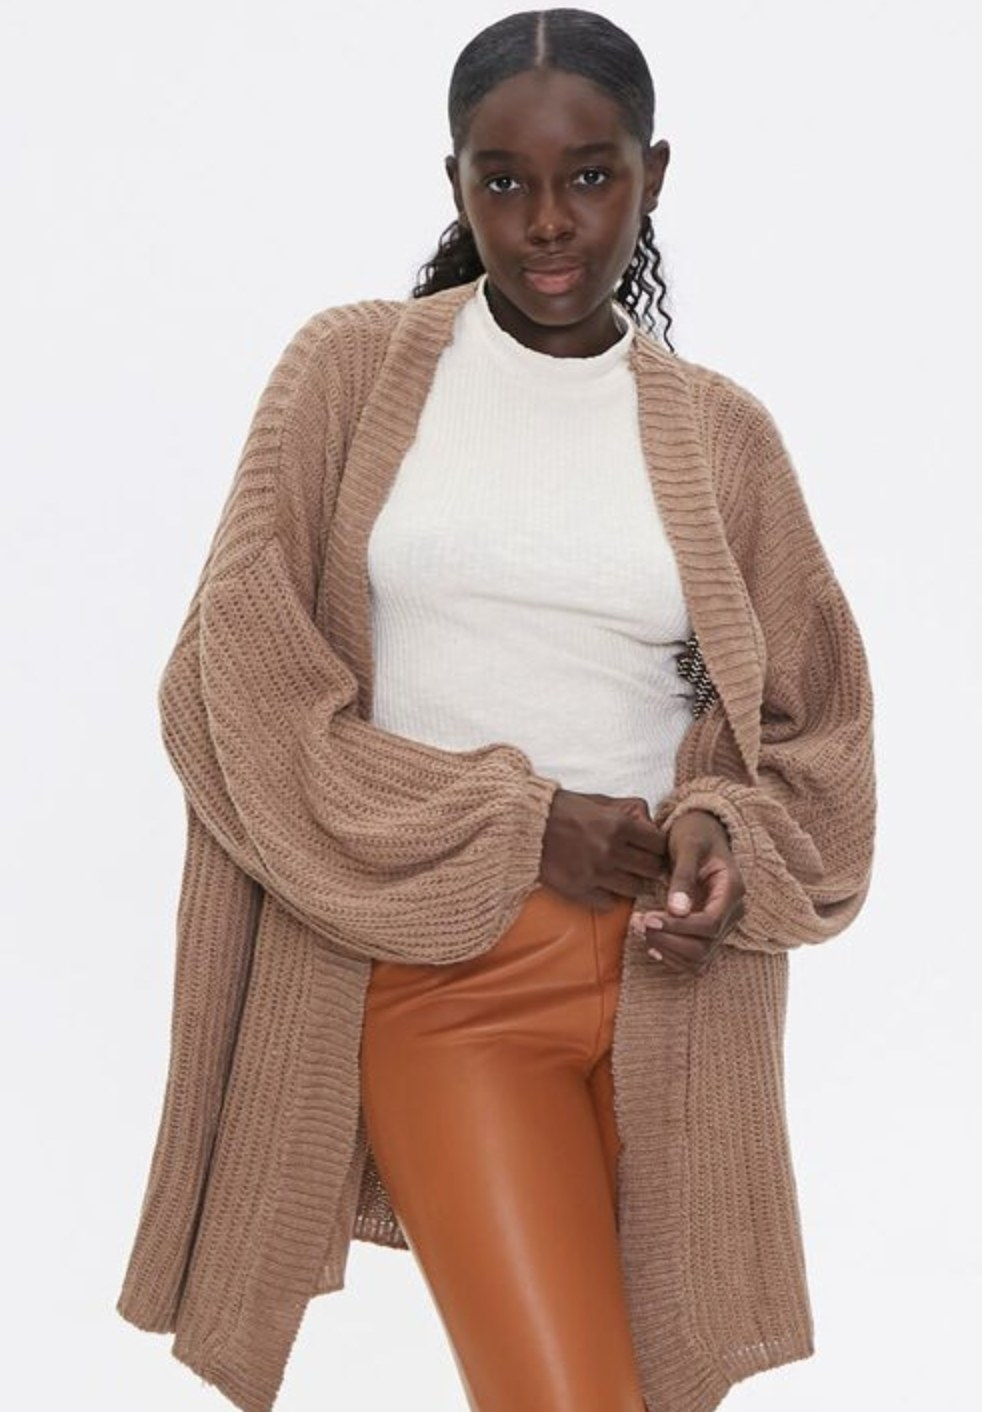 Model is wearing a tan cardigan, white top, and orange pants